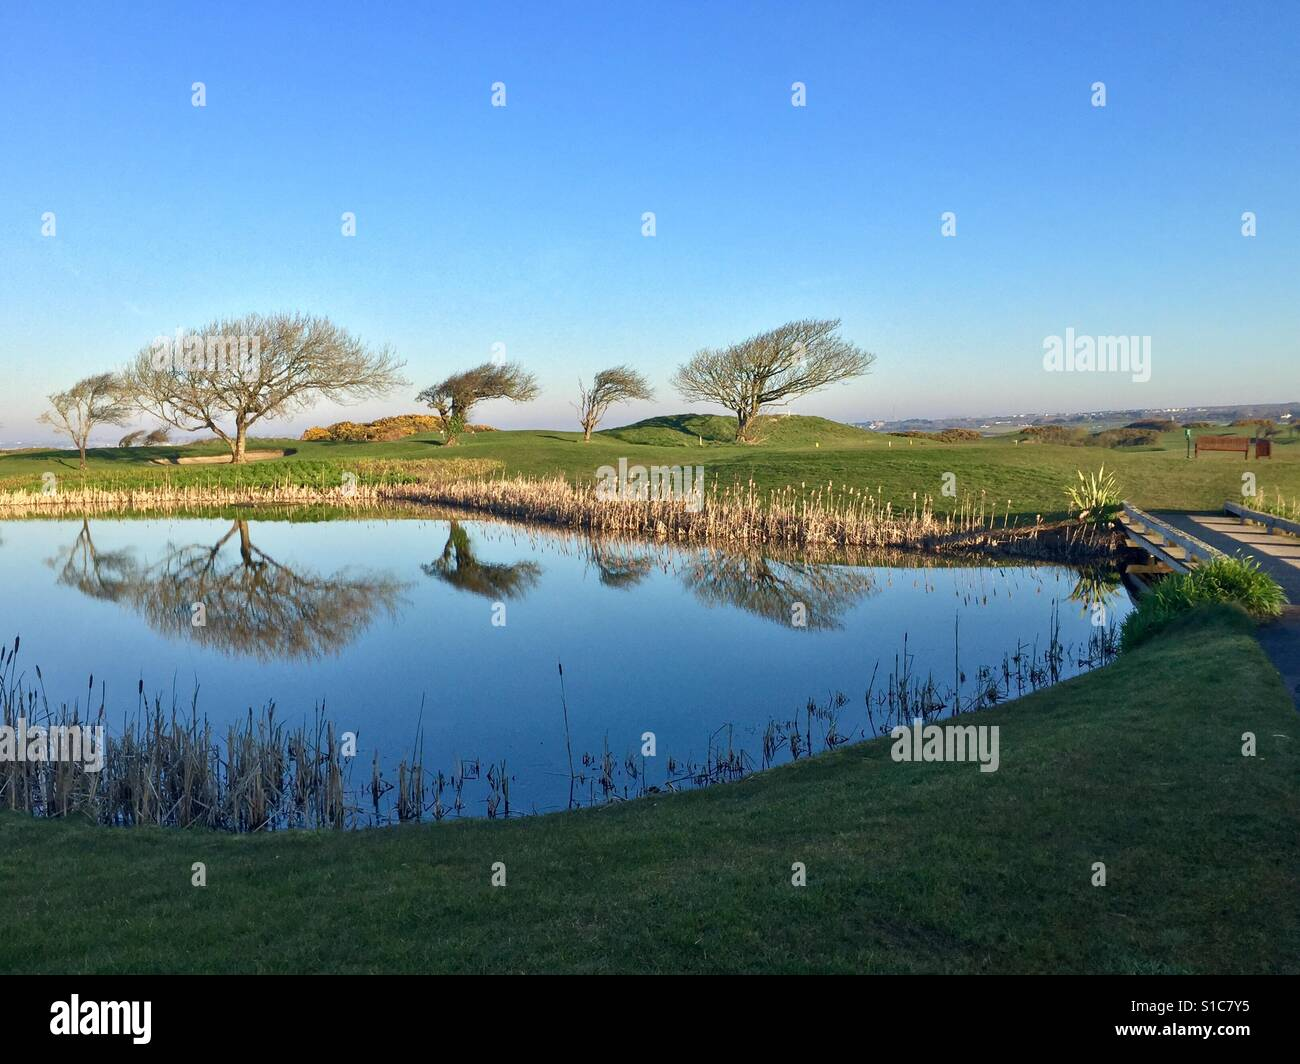 Reflections, Spring Morning in Ireland - Stock Image